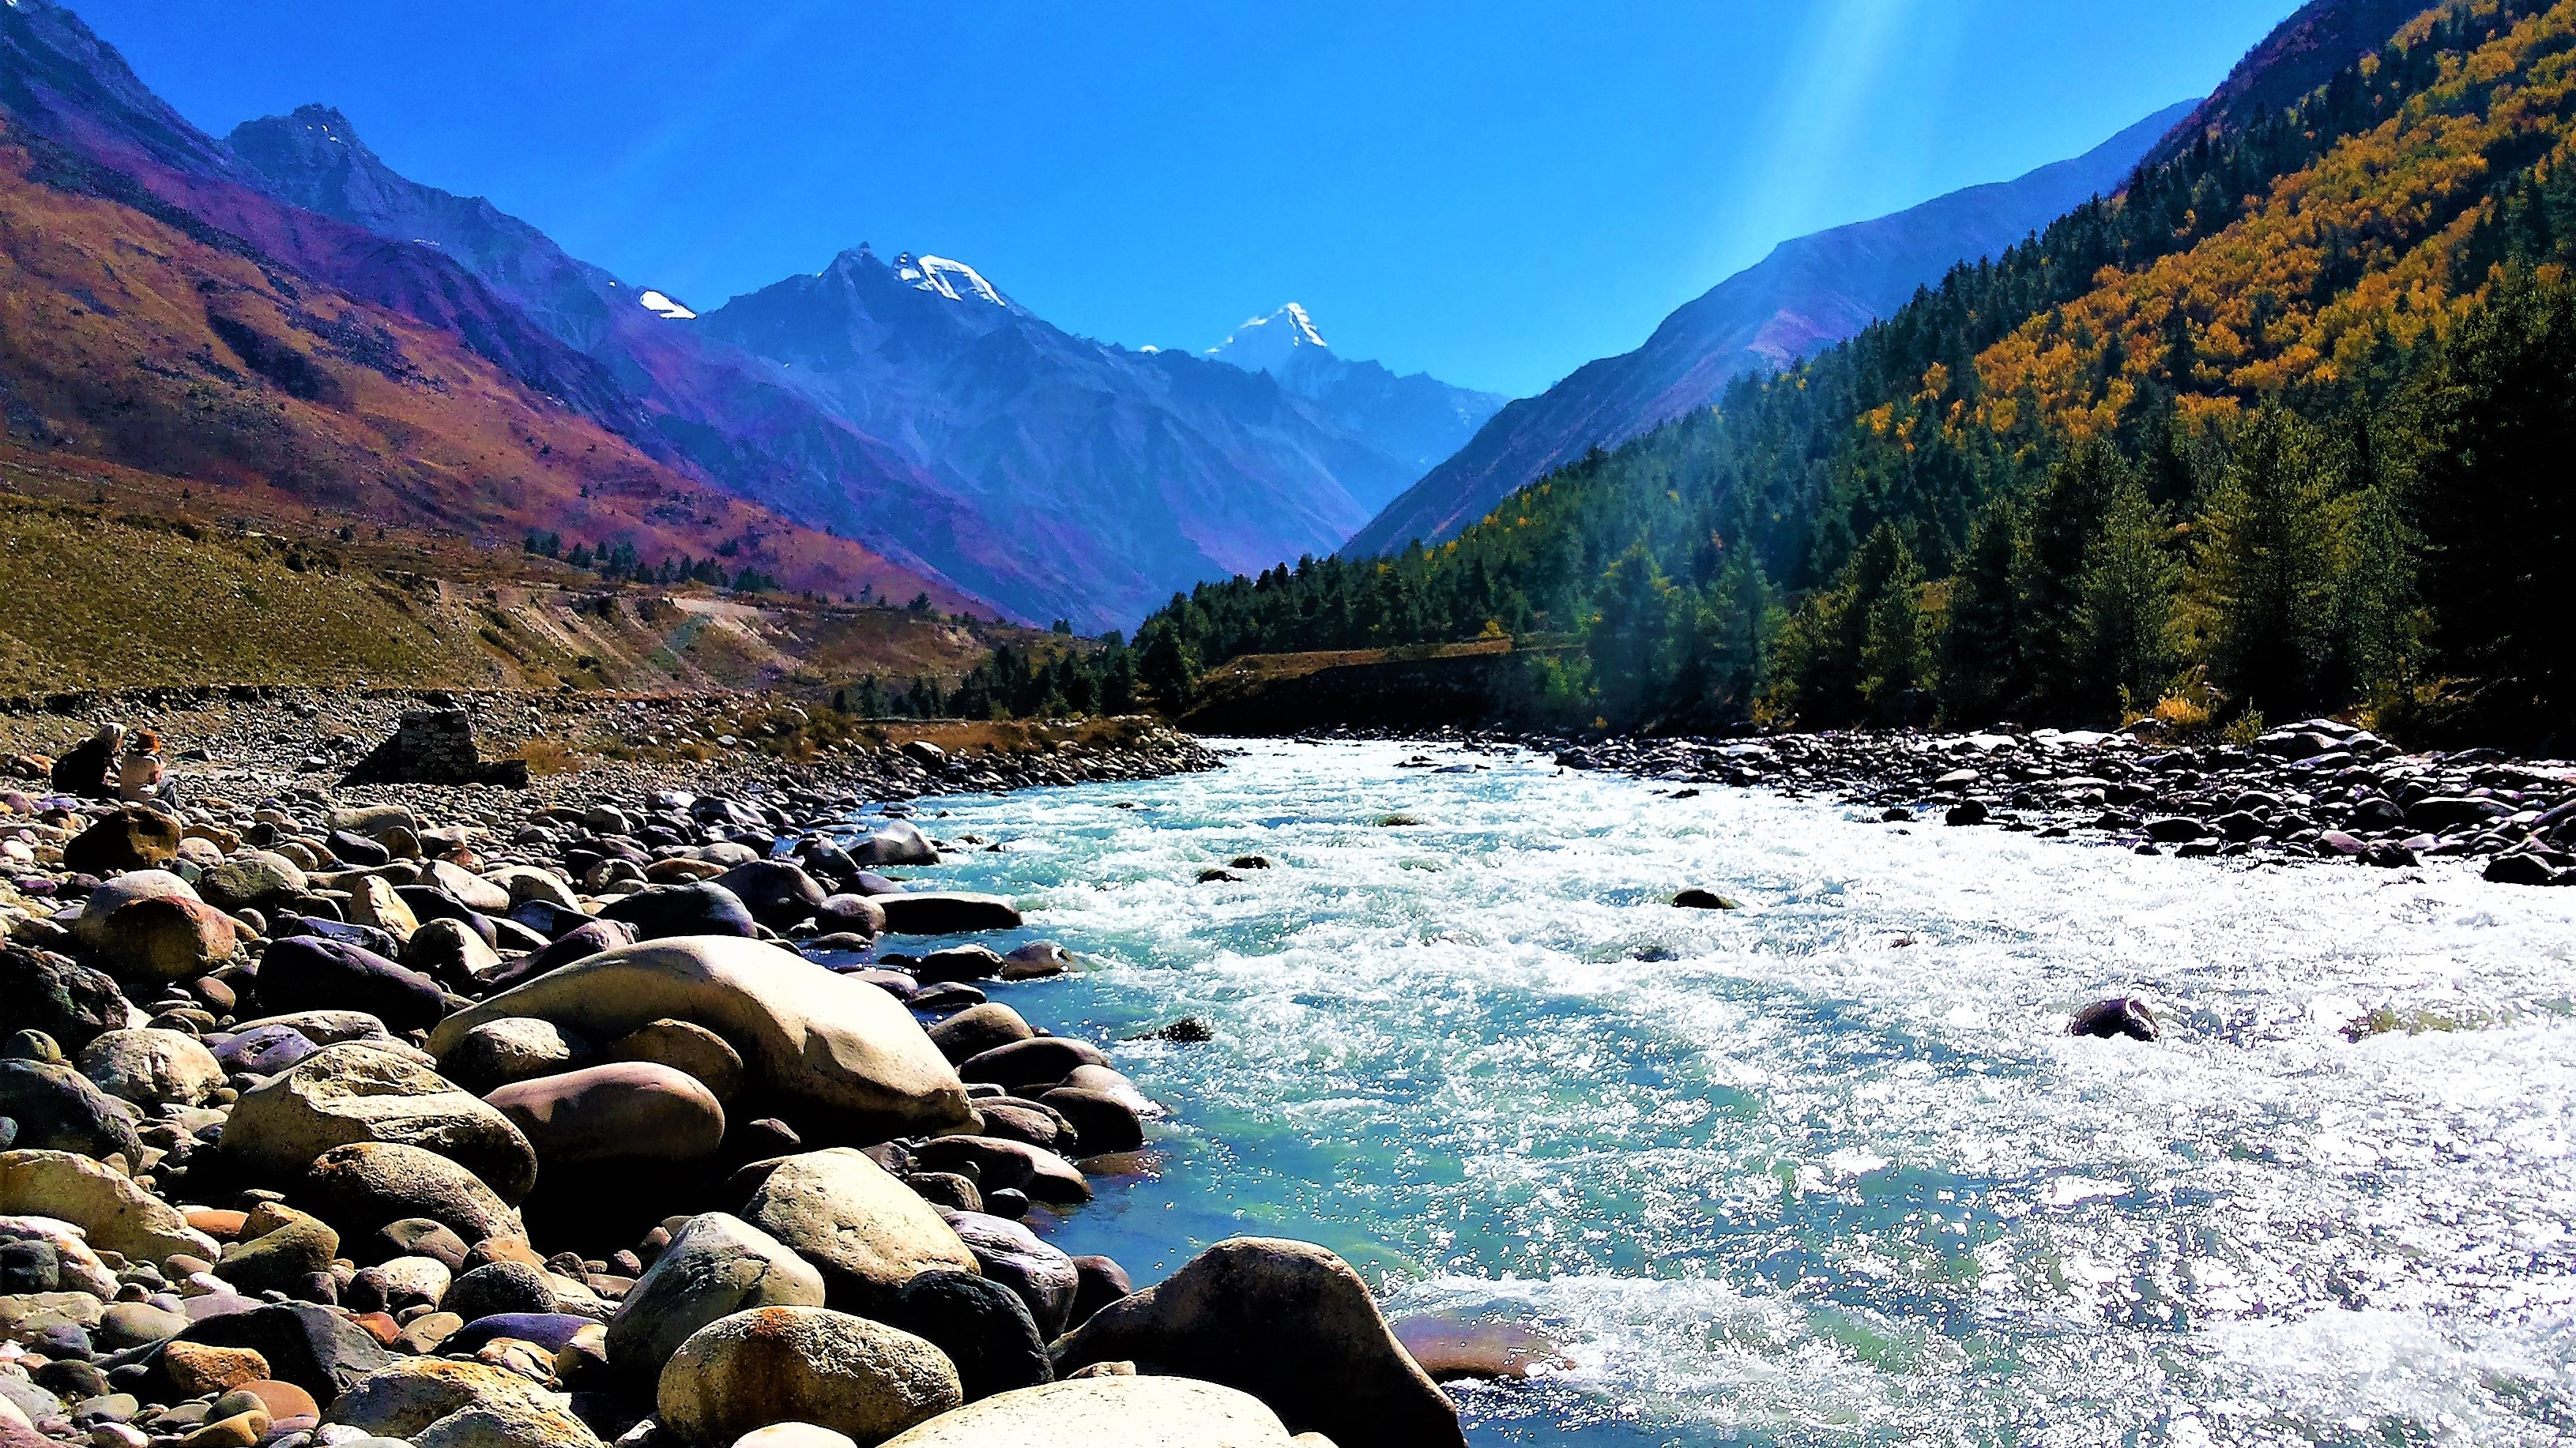 The most scenic place I have ever been, Chhitkul, 2014